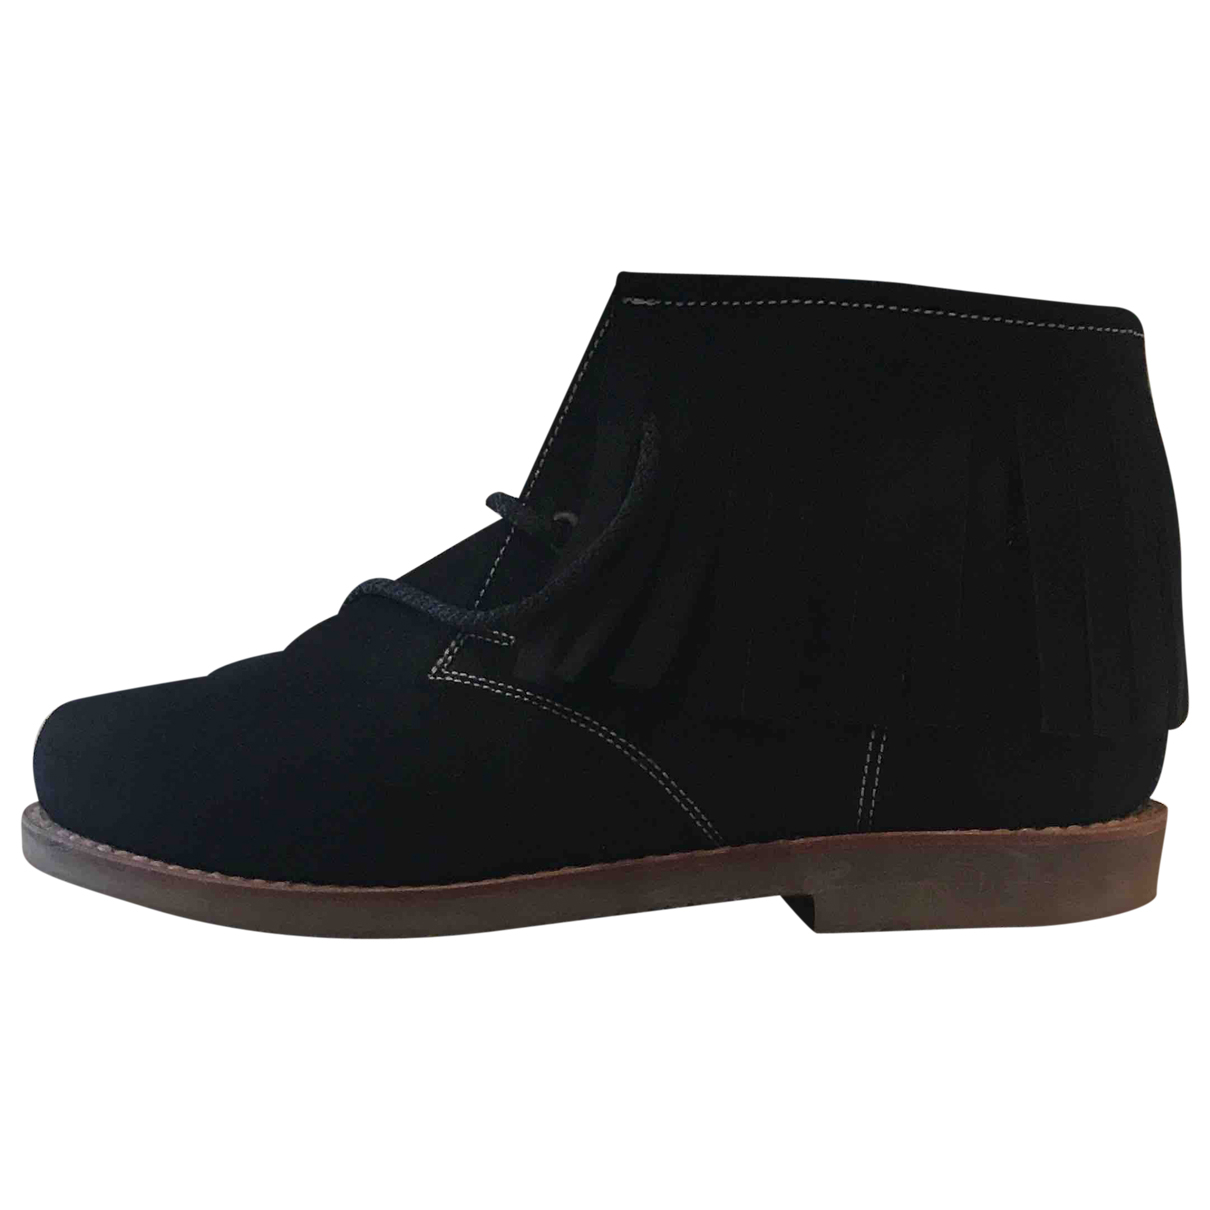 Penelope Chilvers \N Black Rubber Ankle boots for Women 41 EU